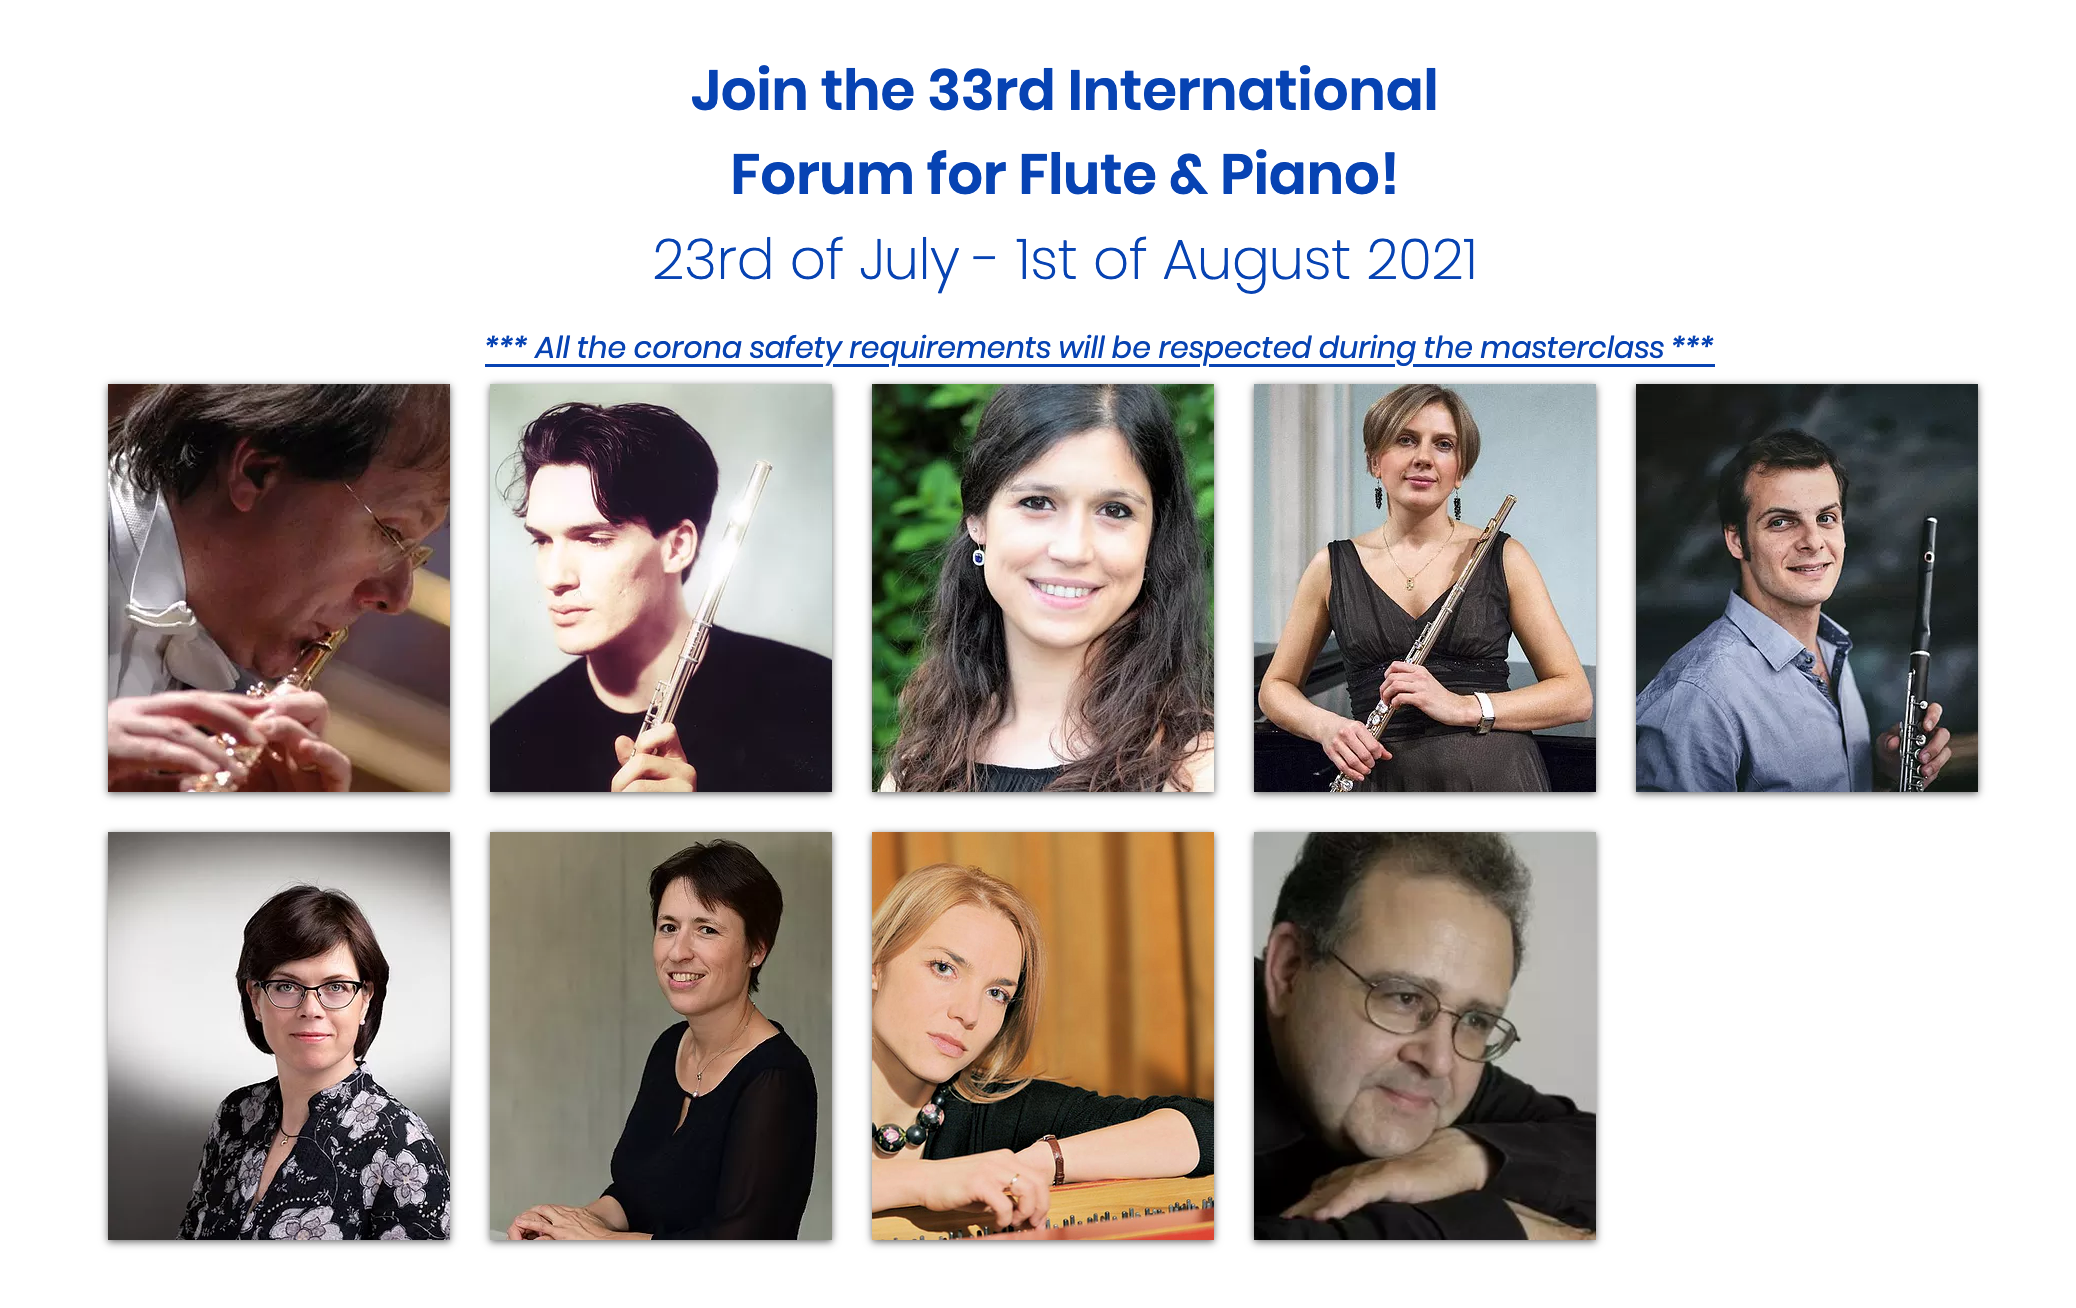 33rd Forum International for Flute and Piano-23rd July-1st August 2021